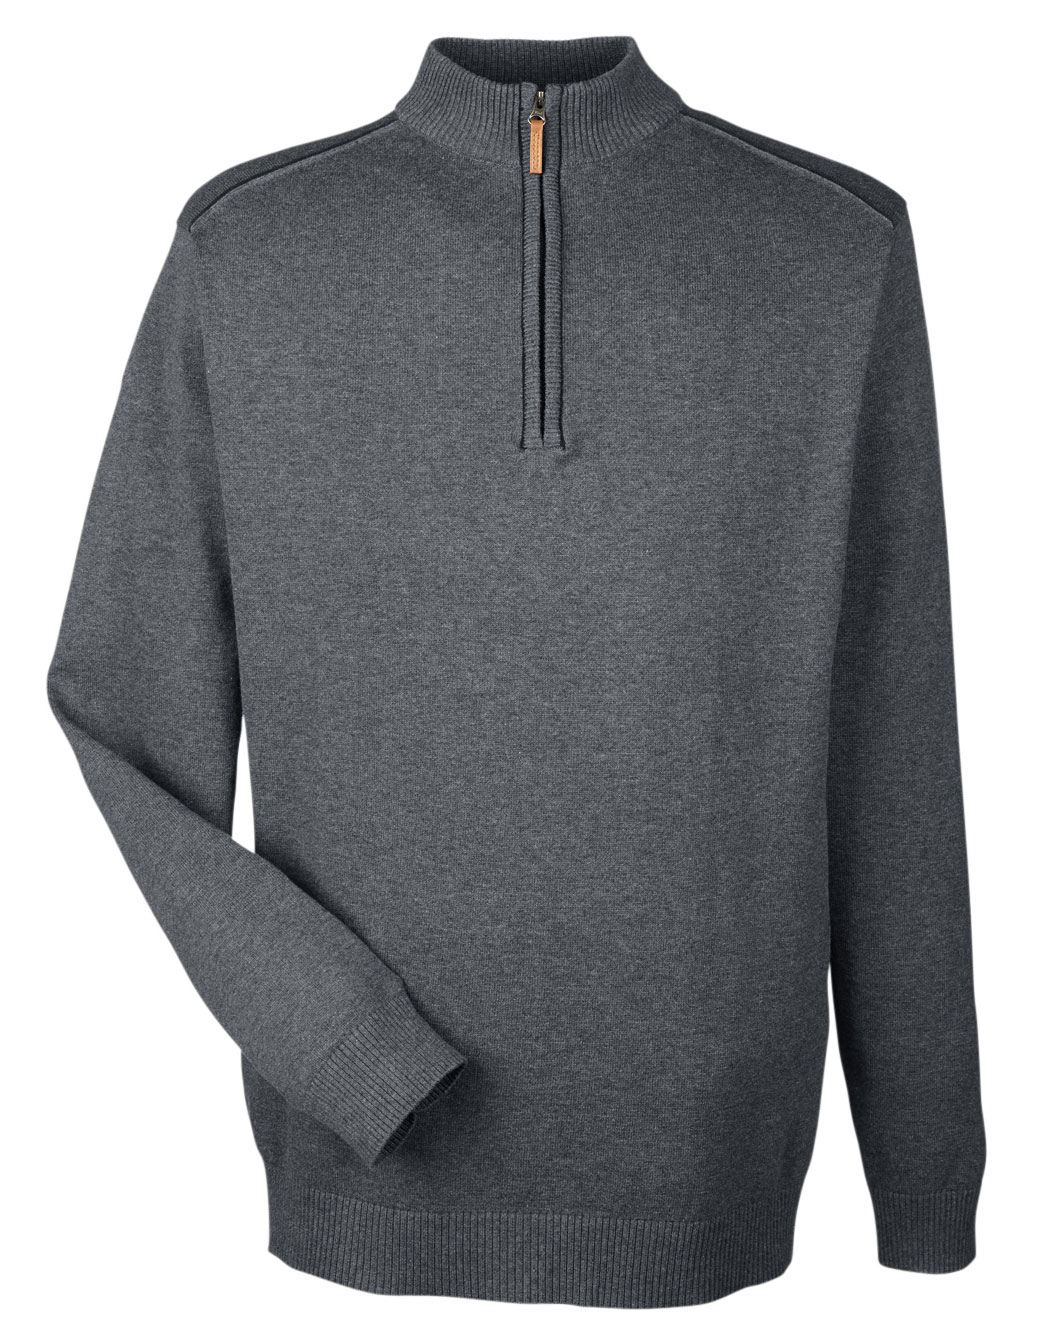 Mens Manchester Fully-Fashioned 1/2-Zip Sweater